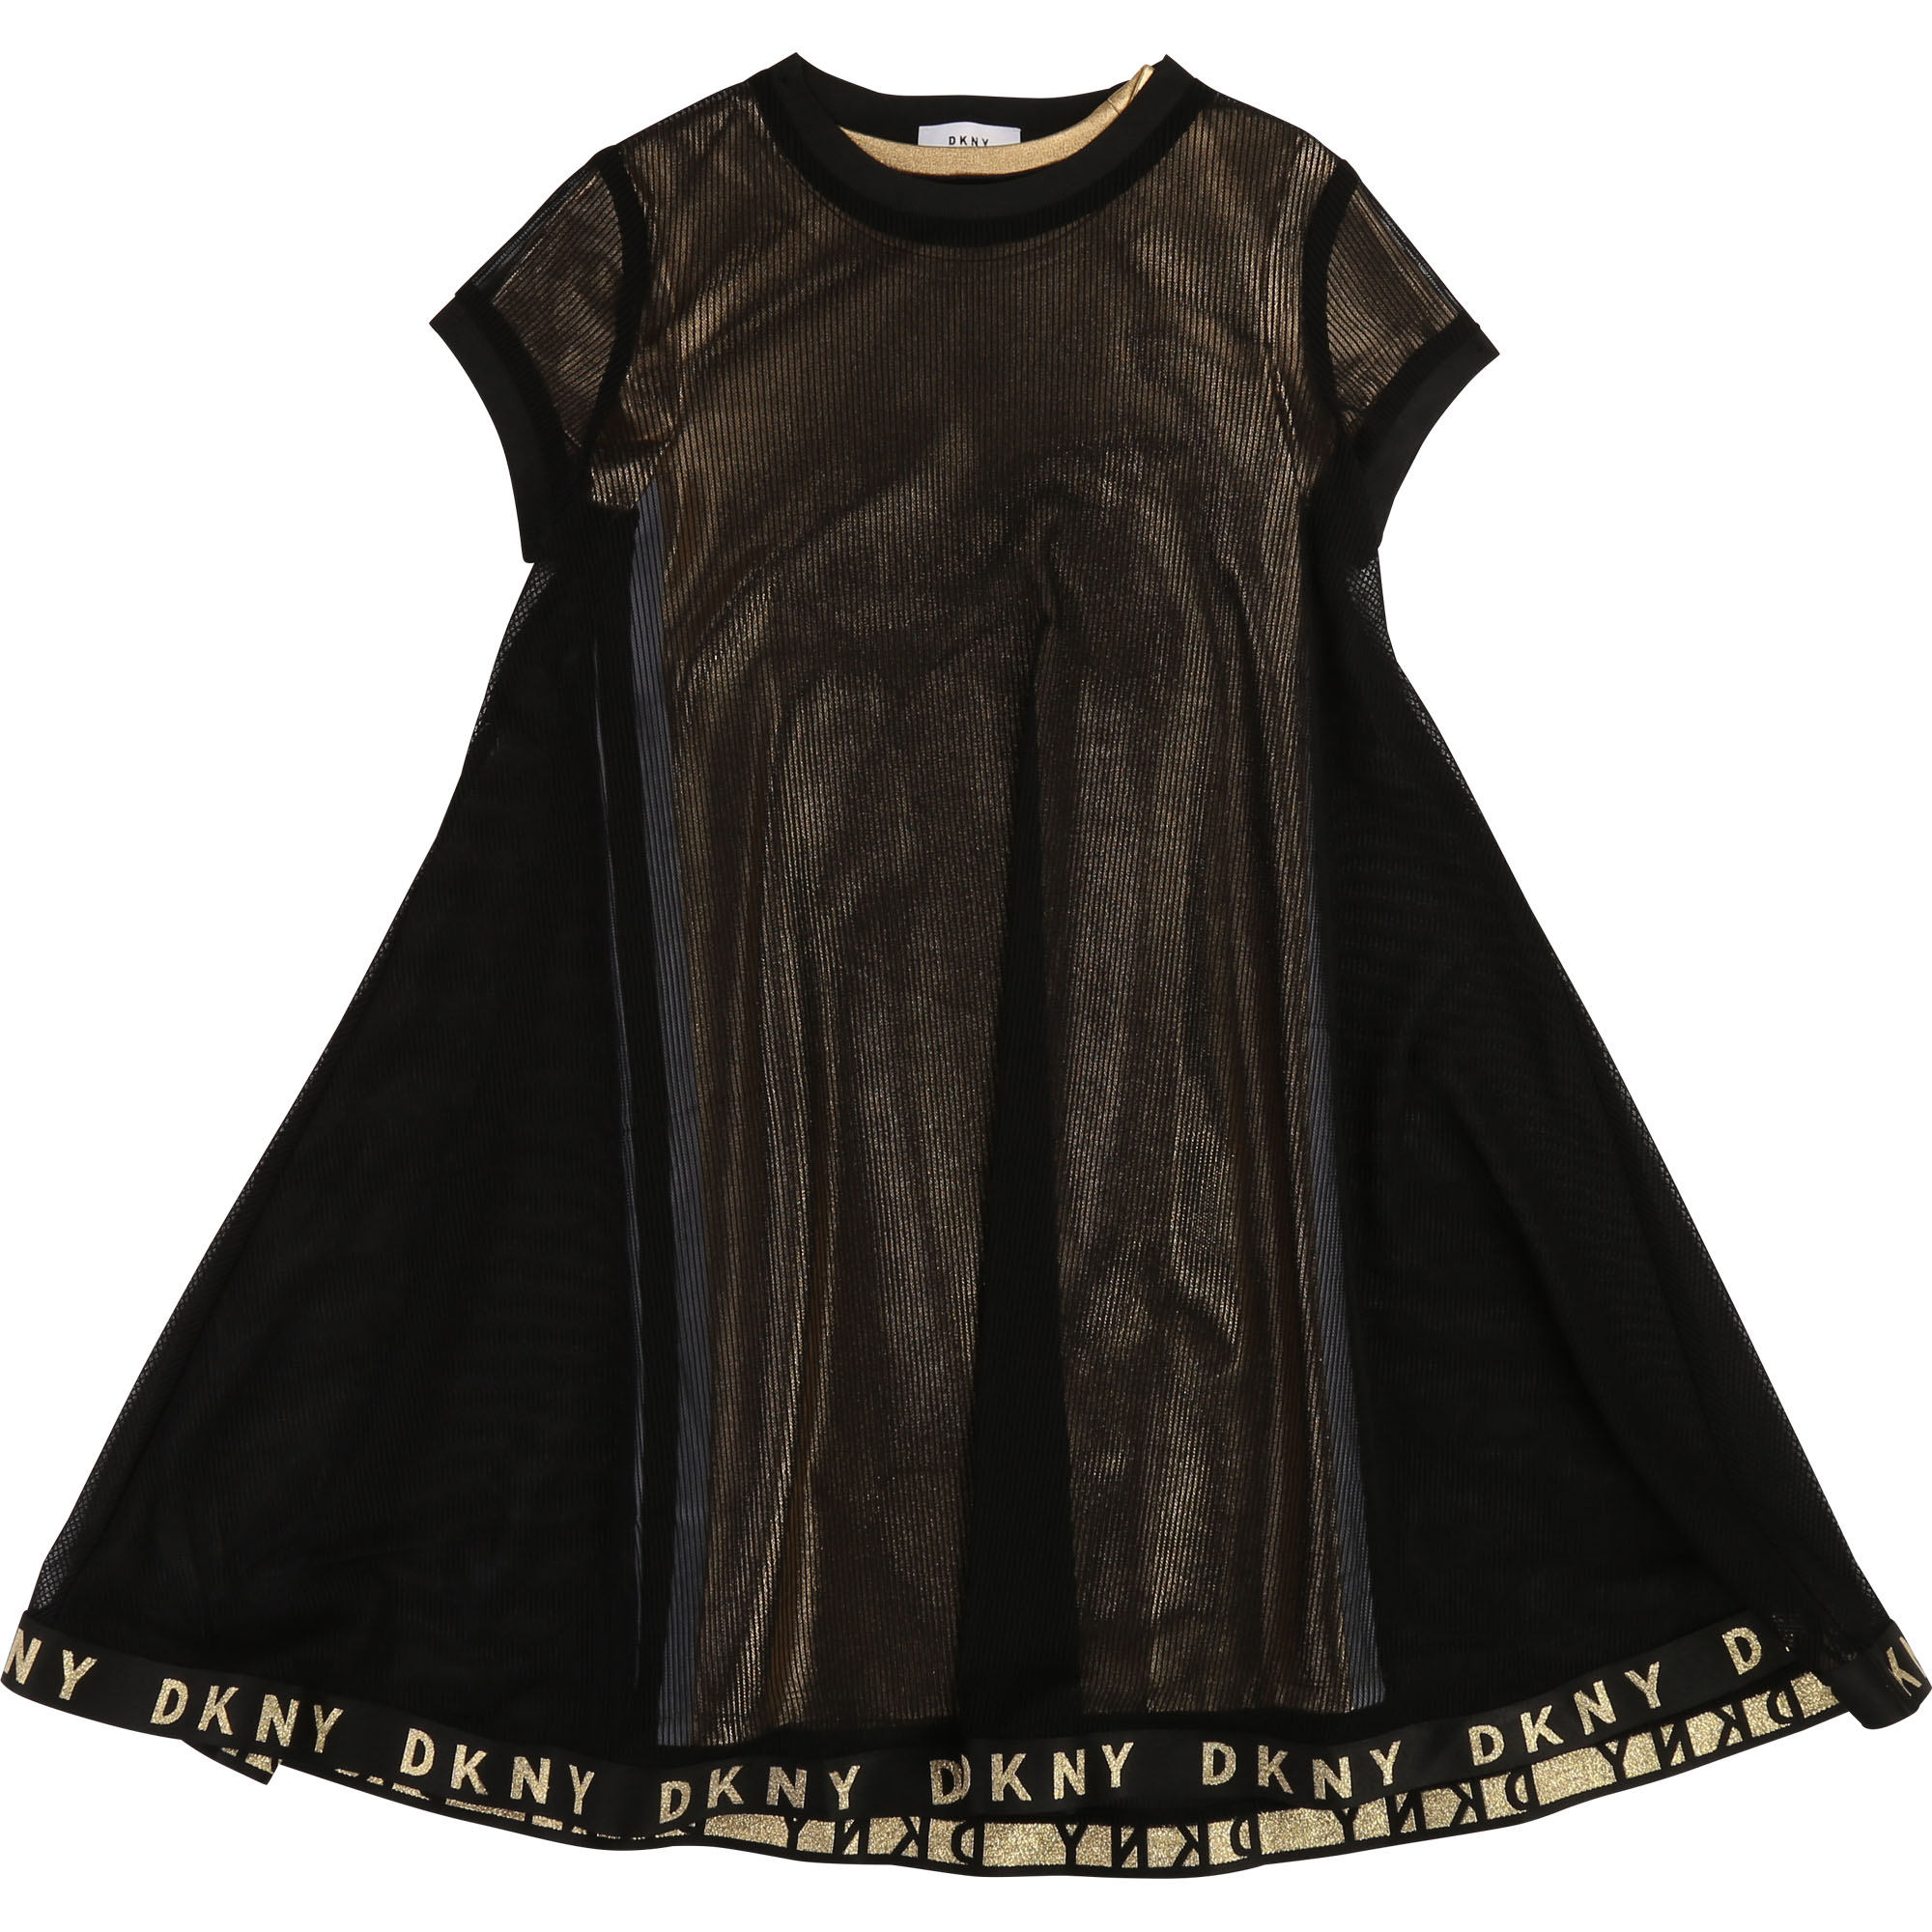 2-in-1 mesh dress DKNY for GIRL